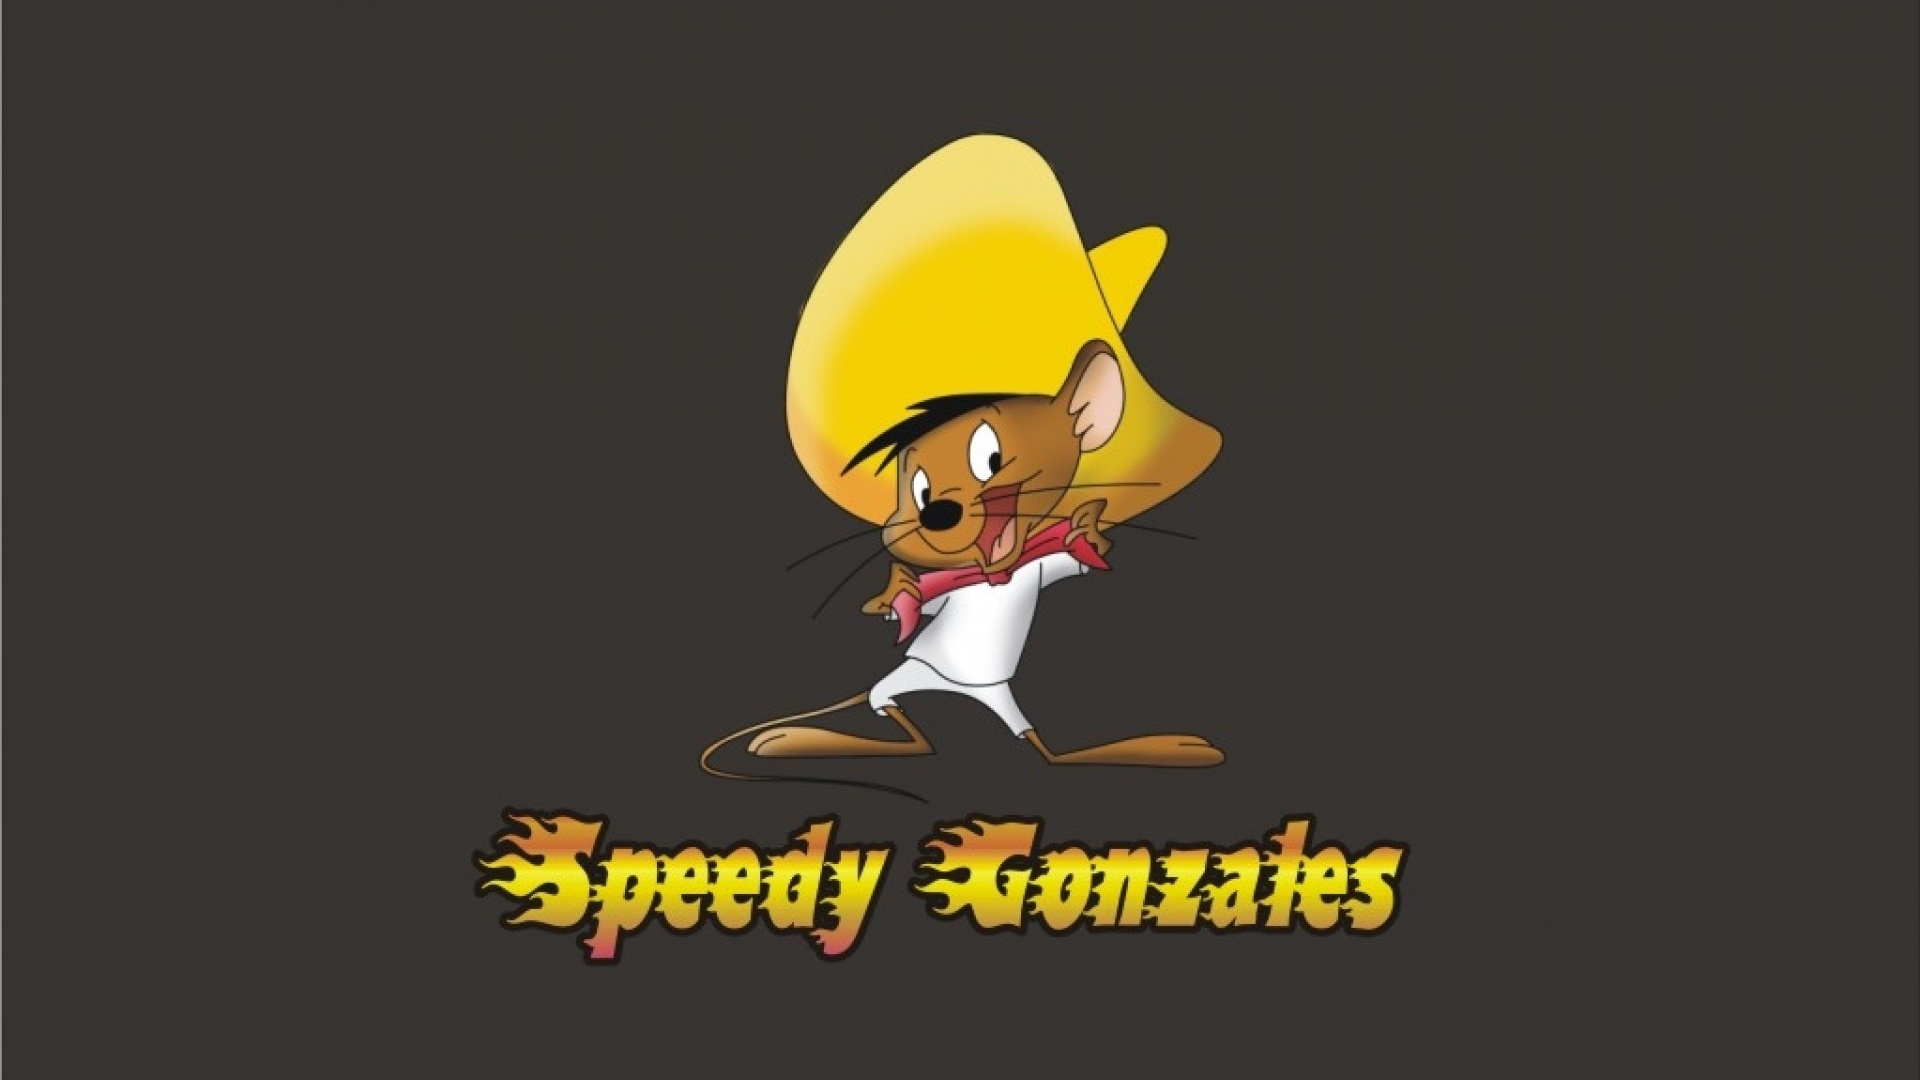 1920x1080 Speedy Gonzales Two